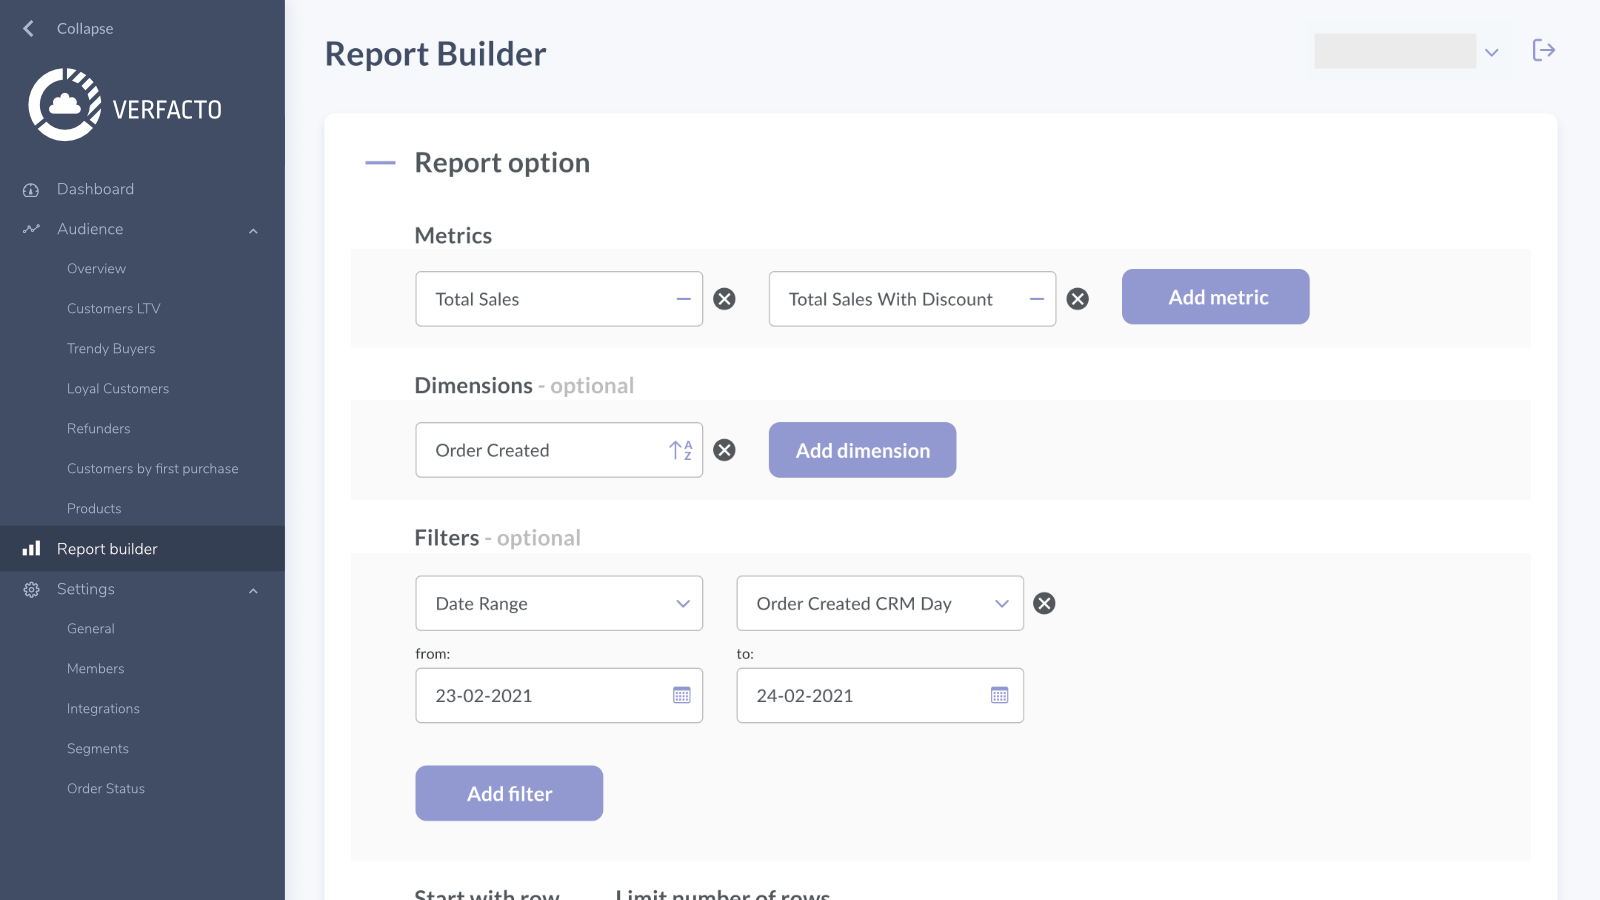 The Report Builder allows to create custom reports